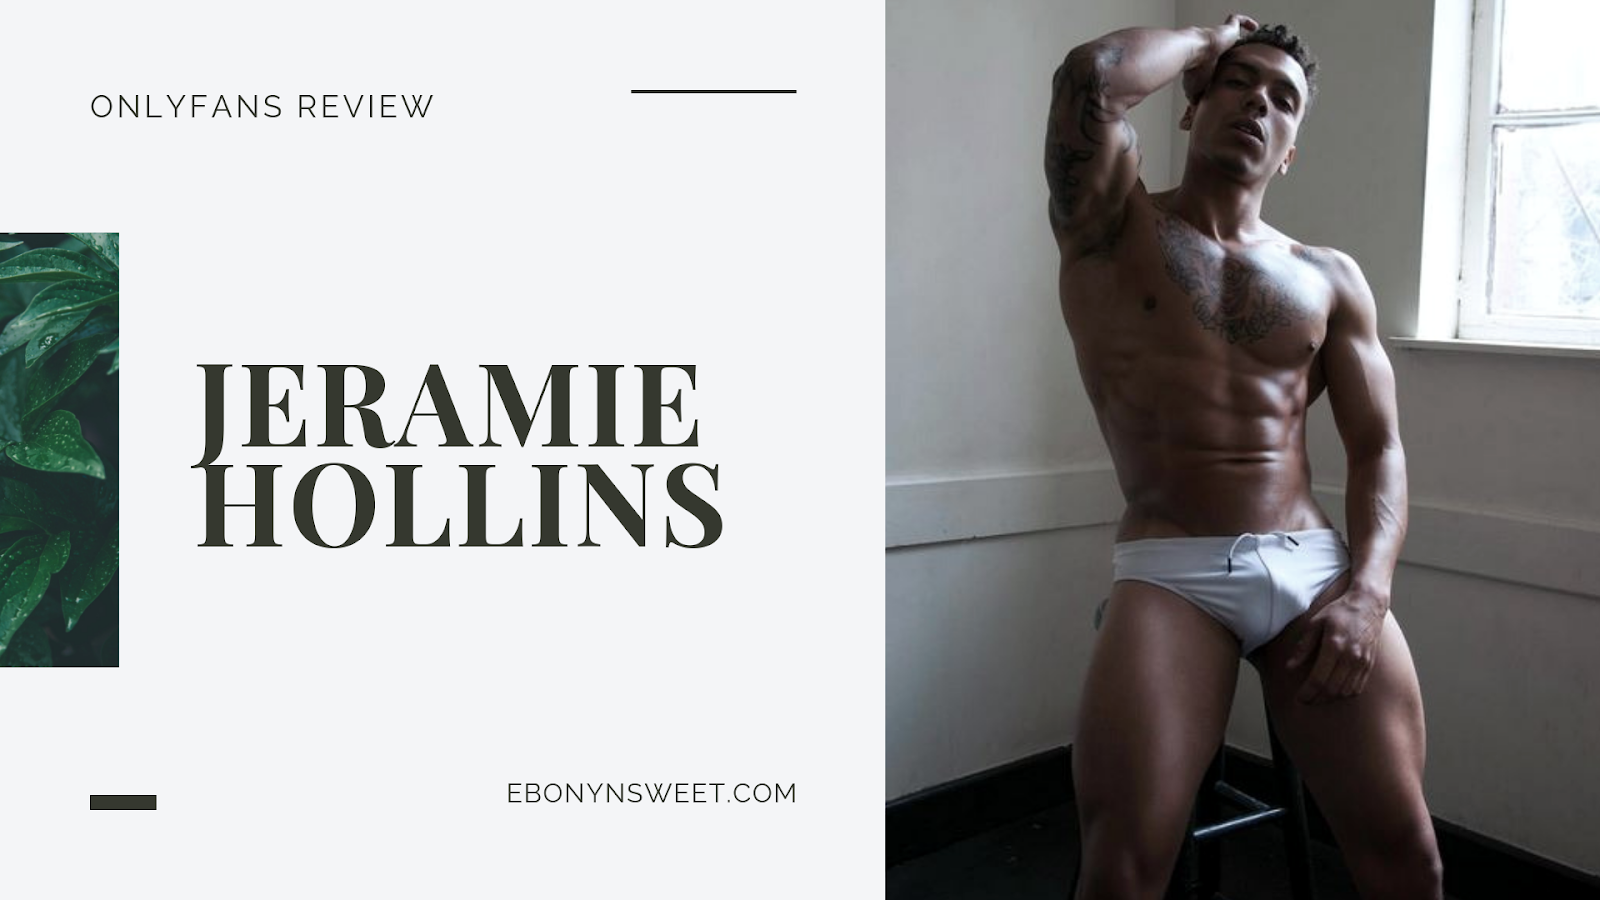 onlyfans, onlyfans review, onlyfans.com, smooveopj, instagram, muaythai, boxing, bbj, bookjeramiegmr@gmail.com, mexico, jeramie hollins nude, jermaie hollins dick, big dick, cock, jeramie hollins pornhub, jeramie hollins onlyfans videos, amature model, nude model, pornstar, bbc, jeramie hollins review, oiyksmoove, nude model, dropbox link, google drive link, tumblr, jeramie hollins twitter, trans, Ebony, gangbang, anal